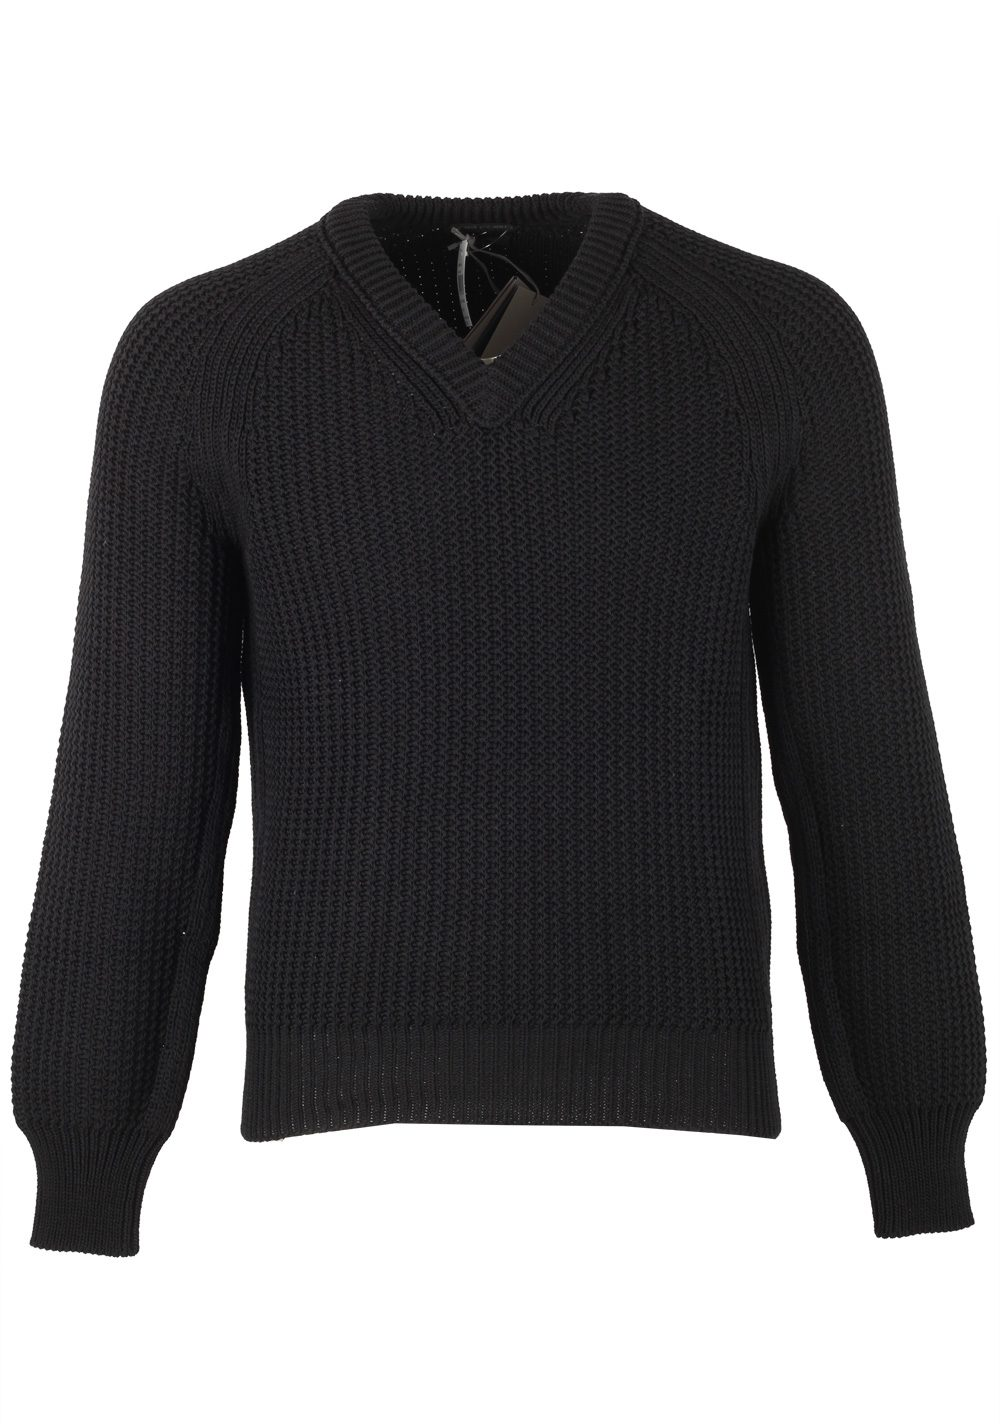 TOM FORD Black V Neck Sweater Size 48 / 38R U.S. In Cotton Silk | Costume Limité